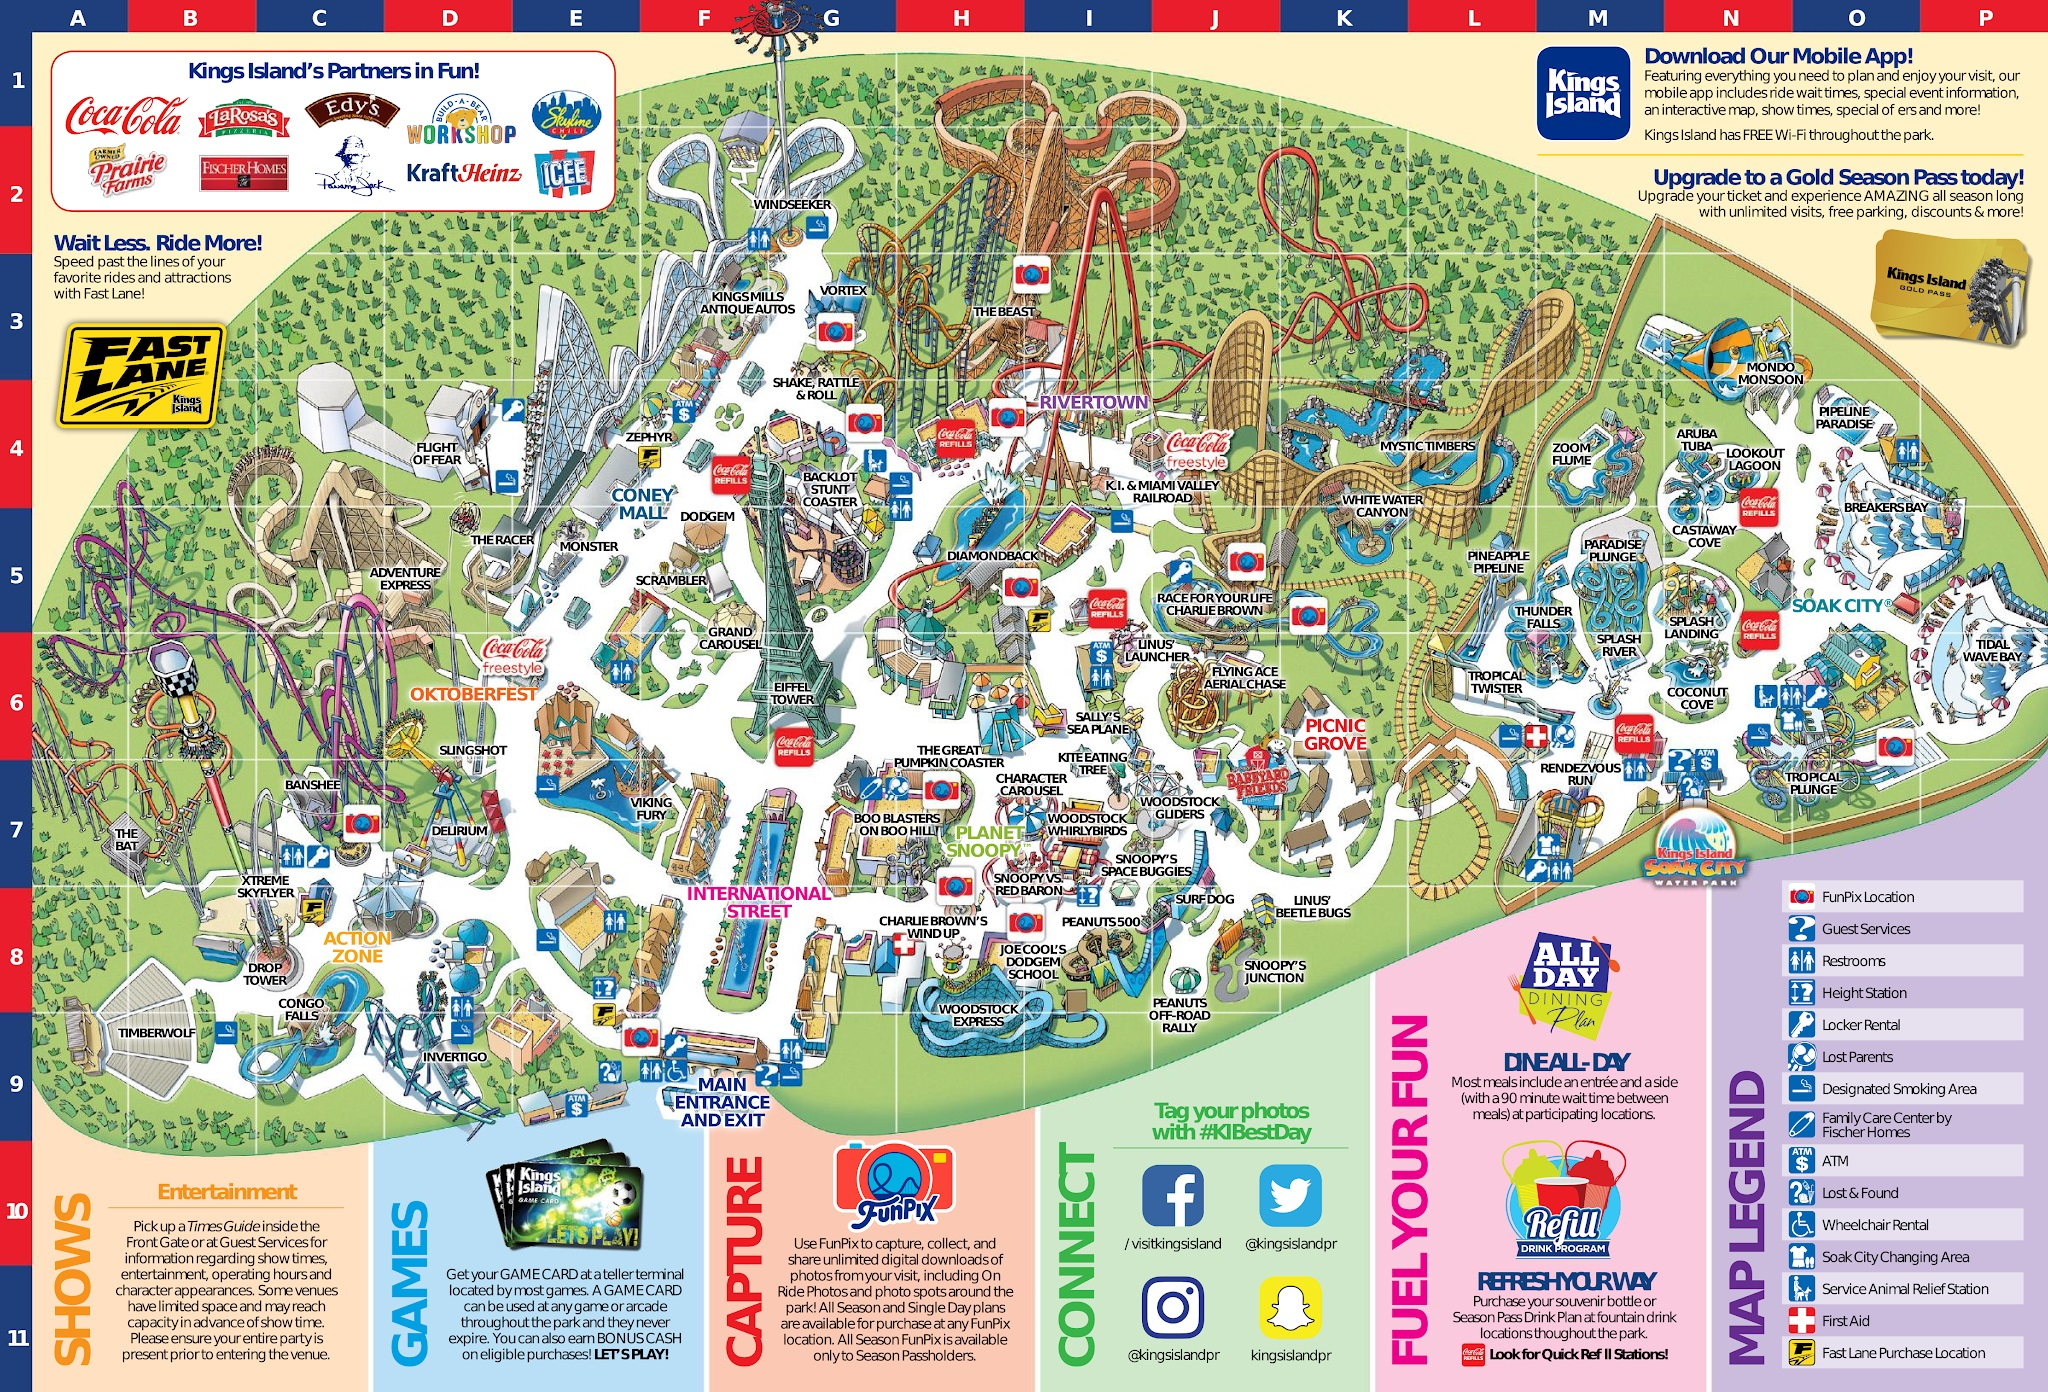 Park Map Kings Island Map on new york city new jersey map, wild river country map, apostle islands map, carowinds map, north island naval base map, islands of adventure map, canada's wonderland map, kiddieland map, paramount park map, disney's blizzard beach map, coney island fun map, westbury new york map, beach waterpark map, six flags map, cincinnati map, cedar point map, oaks amusement park map, michigan adventure map, long island satellite map, disneyland map,